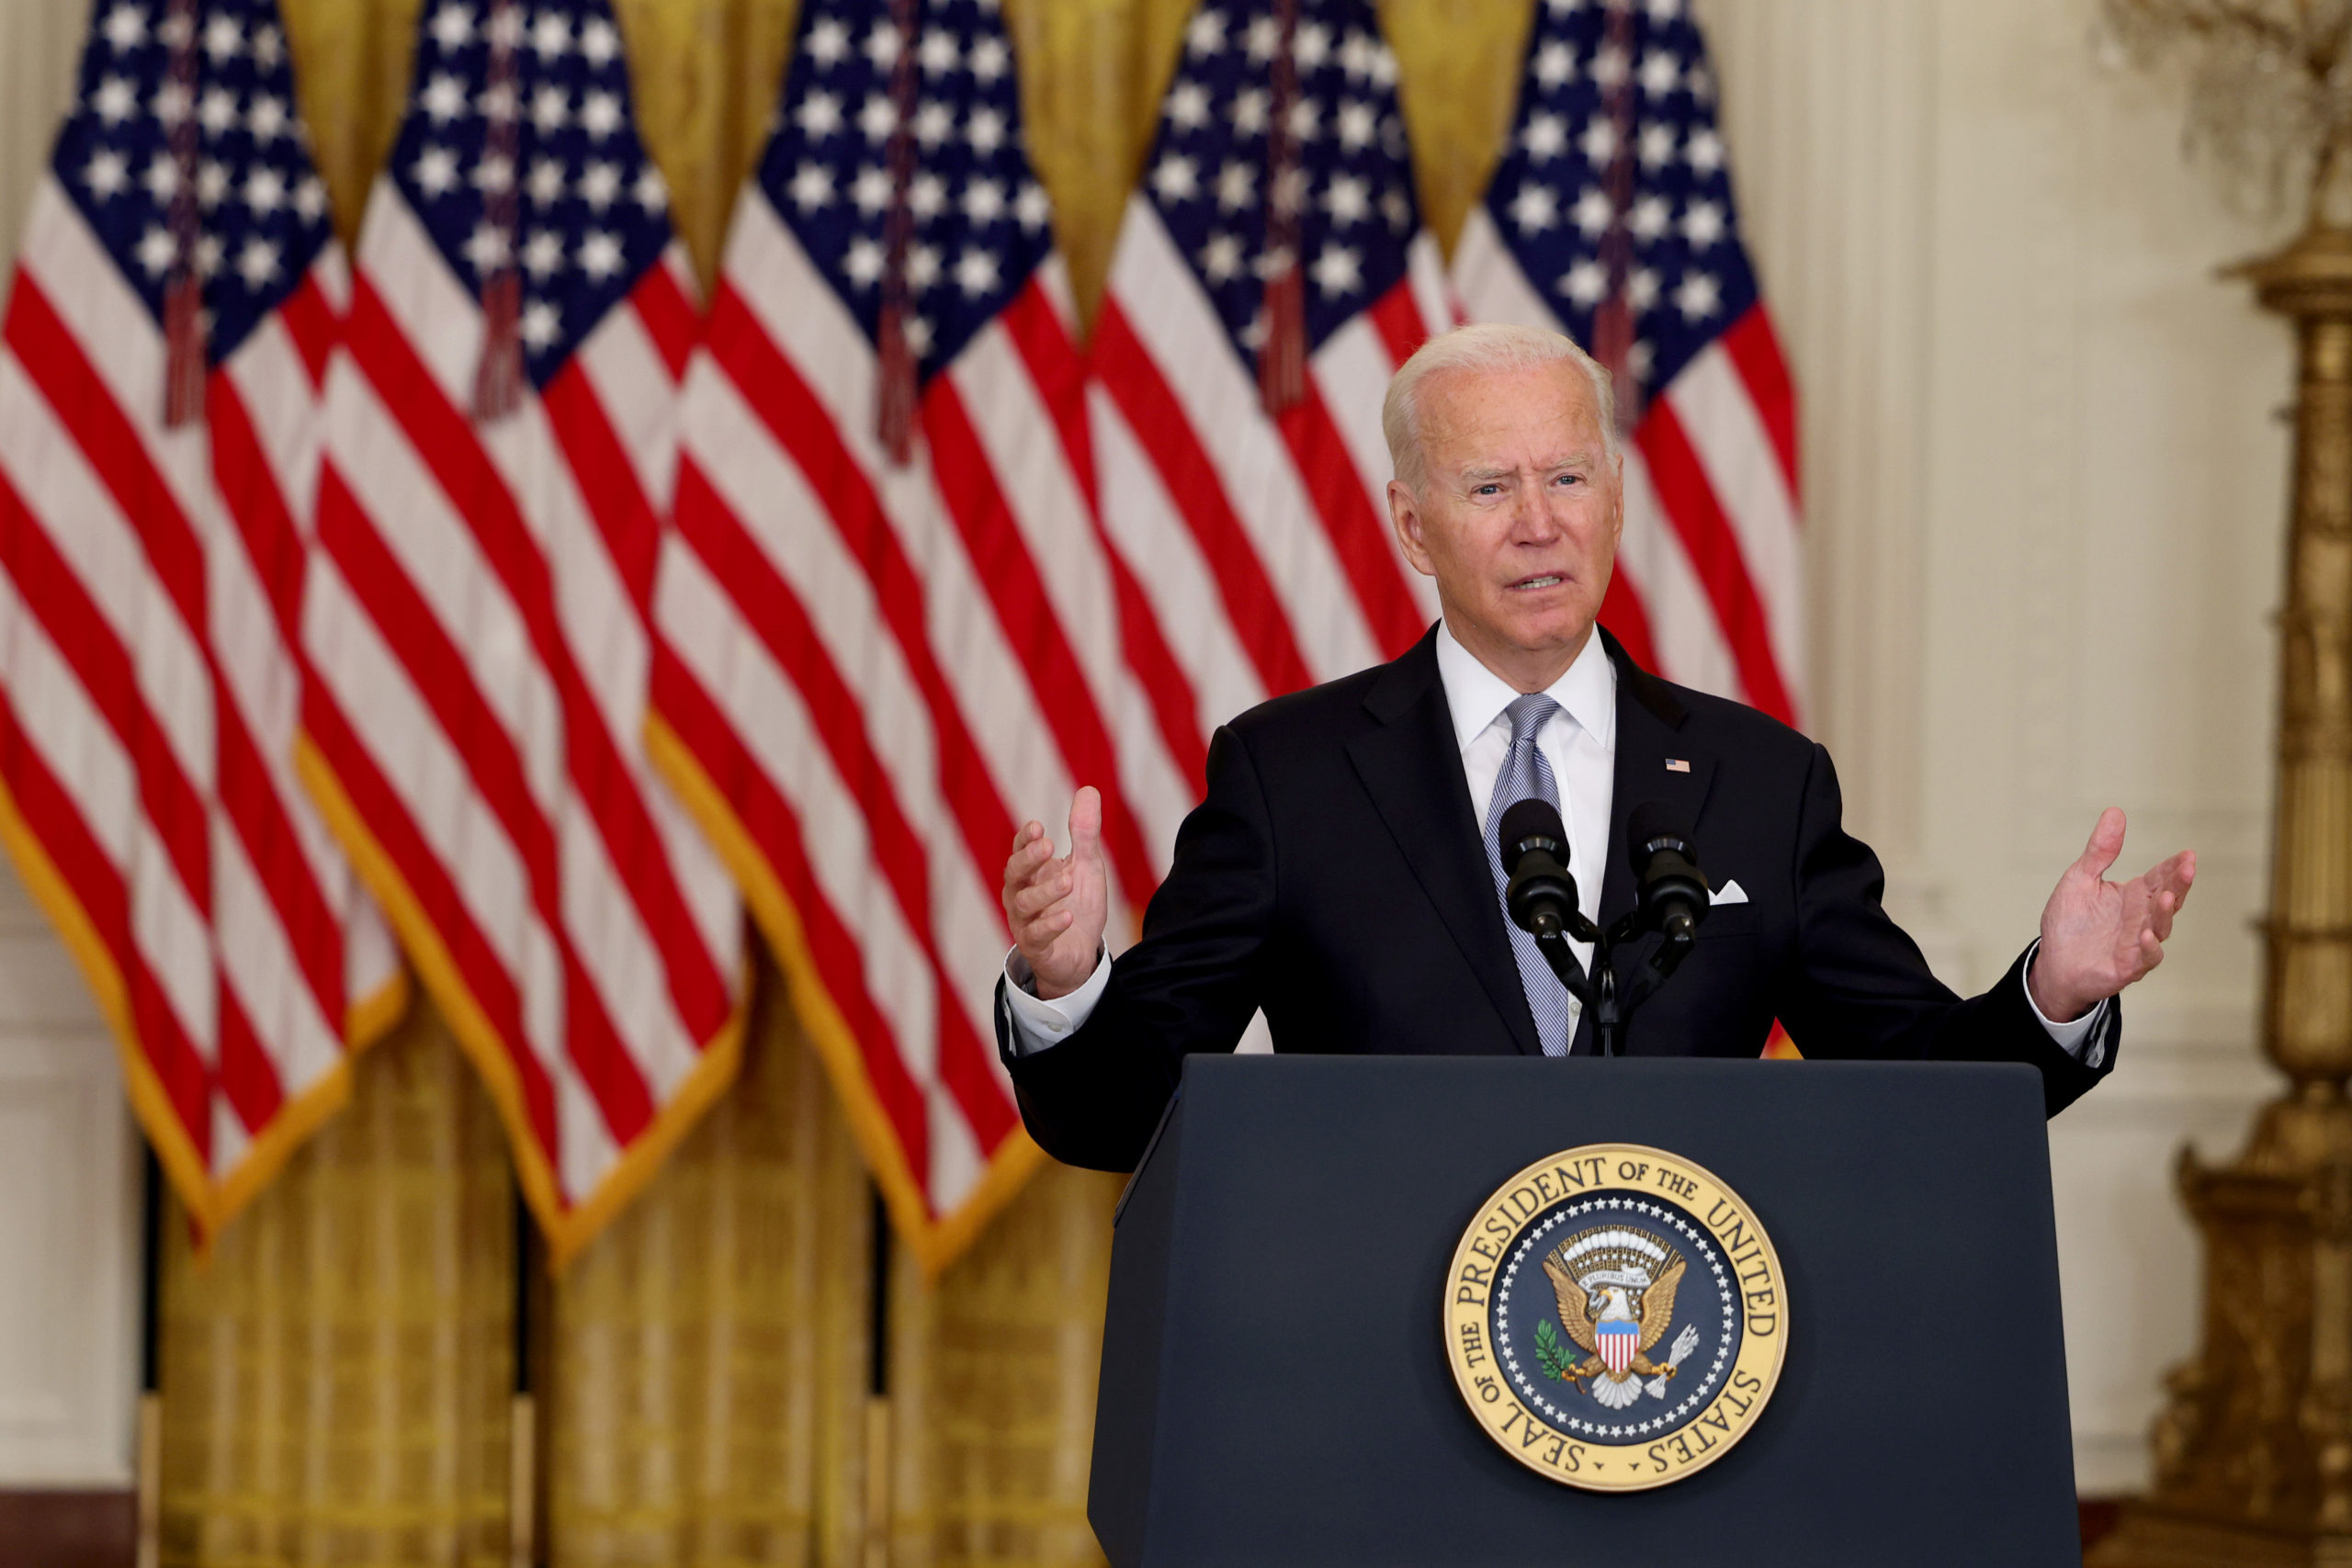 President Joe Biden gives remarks the Afghanistan withdrawal from the East Room of the White House on Monday. (Anna Moneymaker/Getty Images)